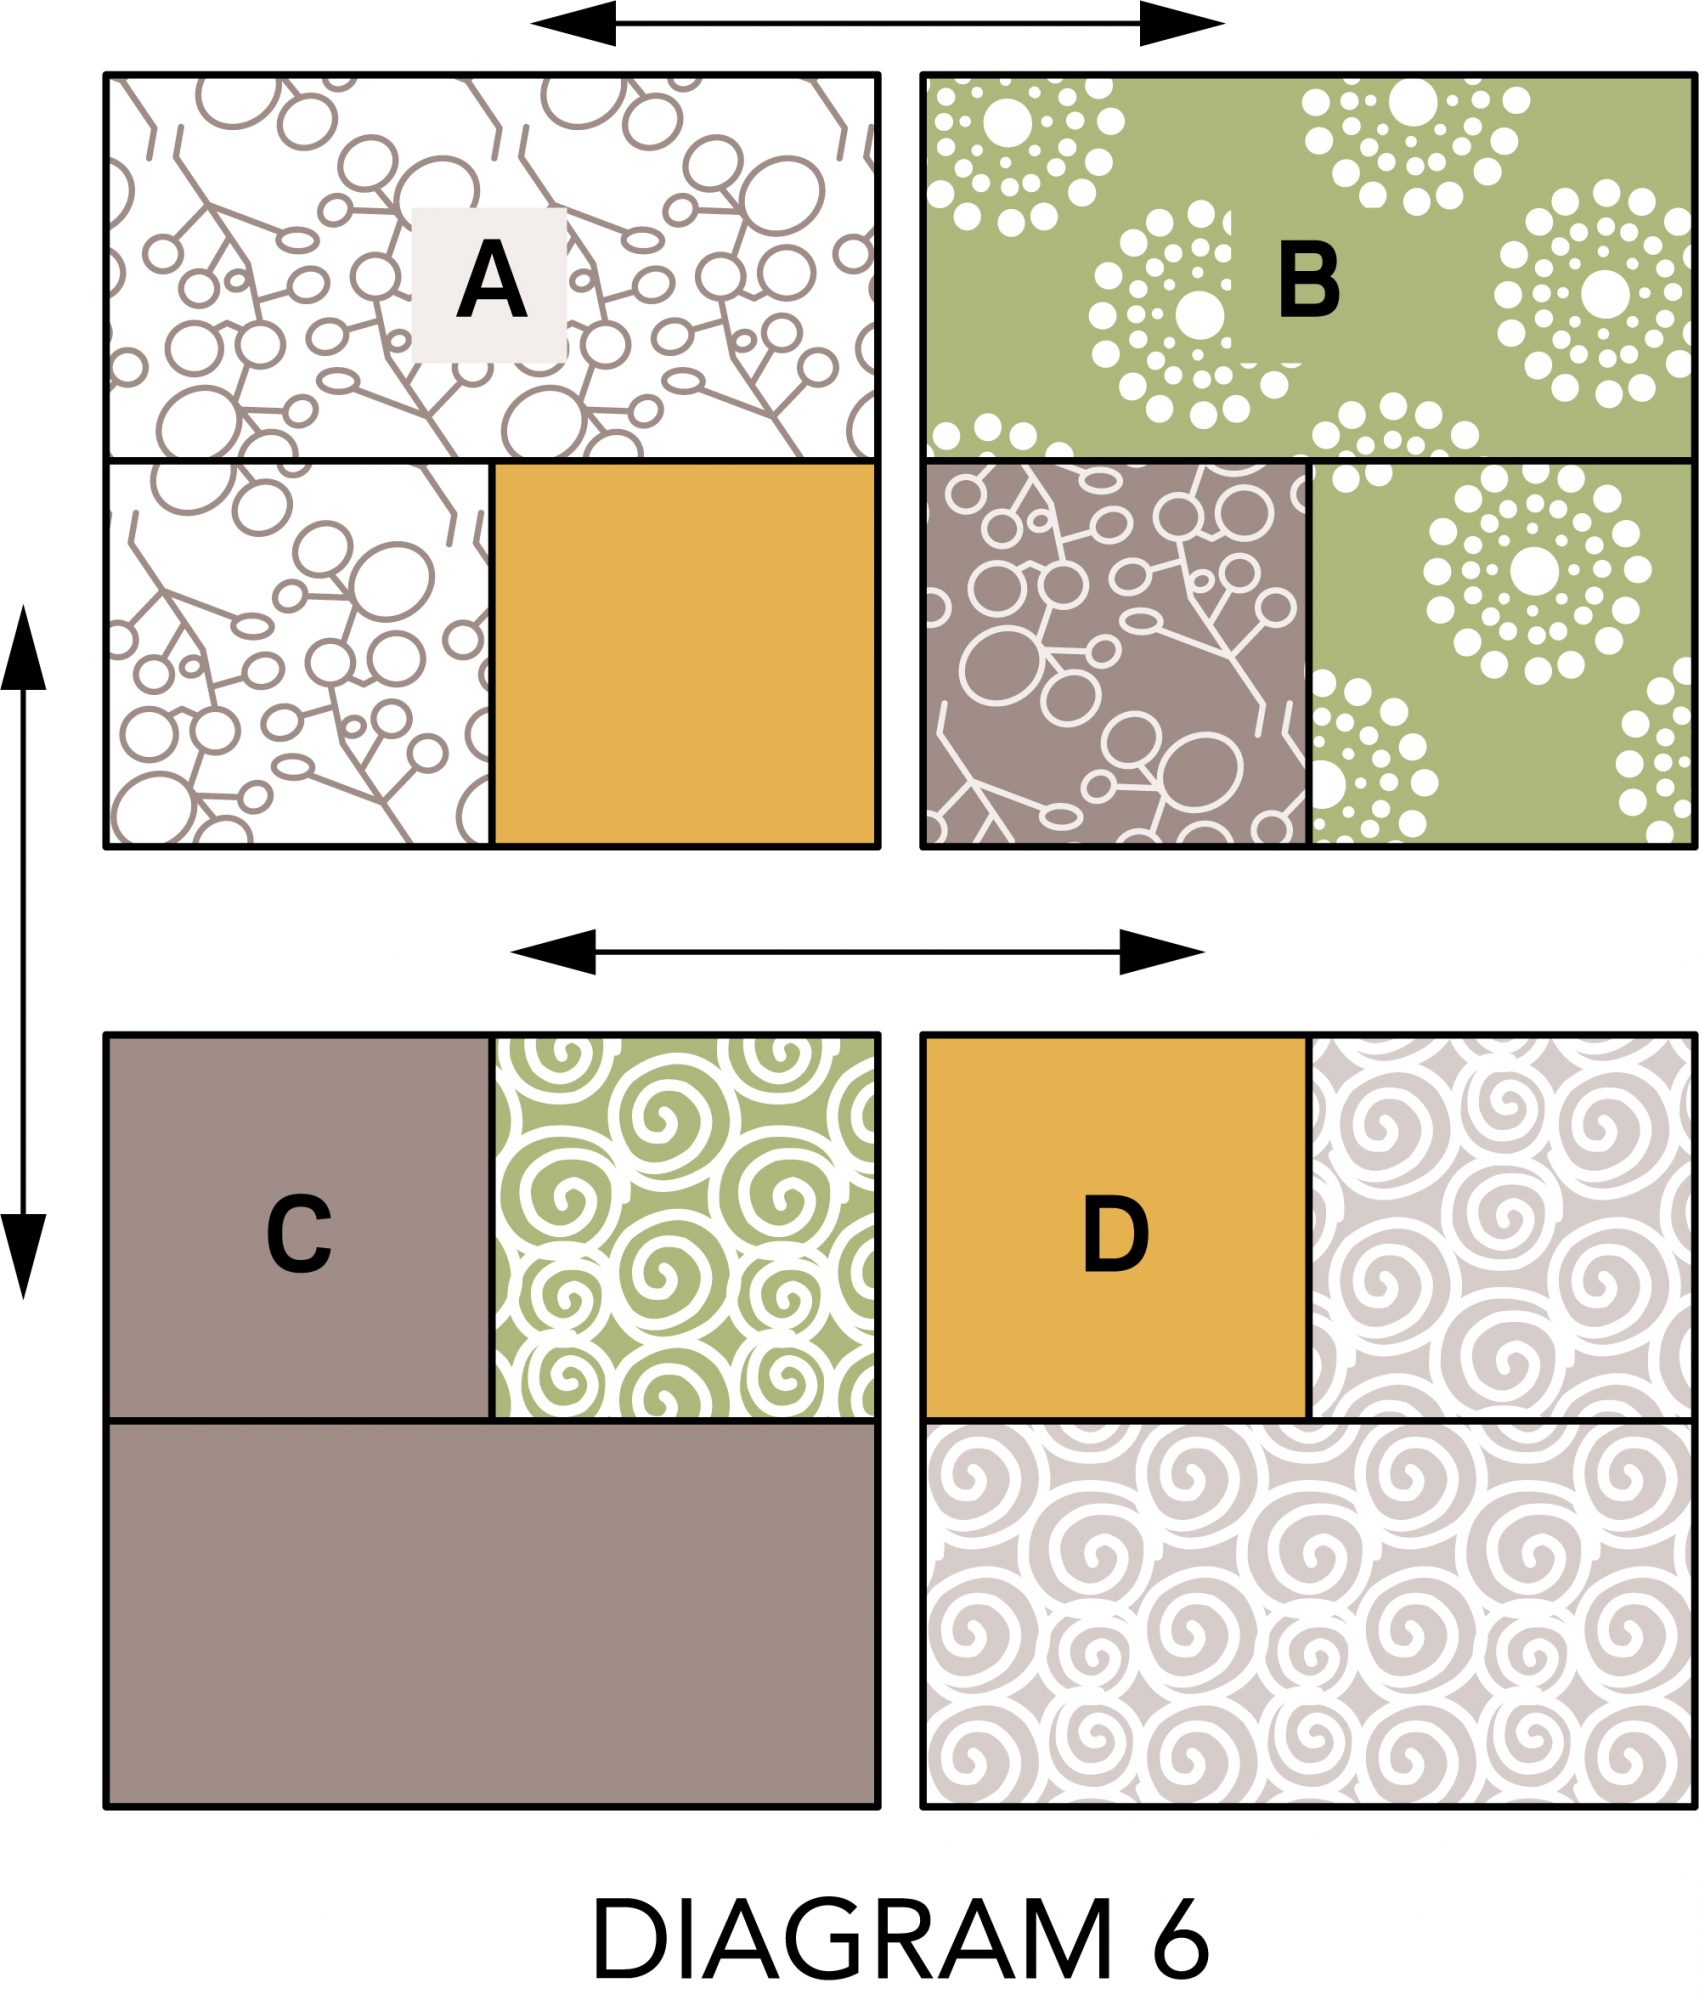 Square Scramble diagram 6